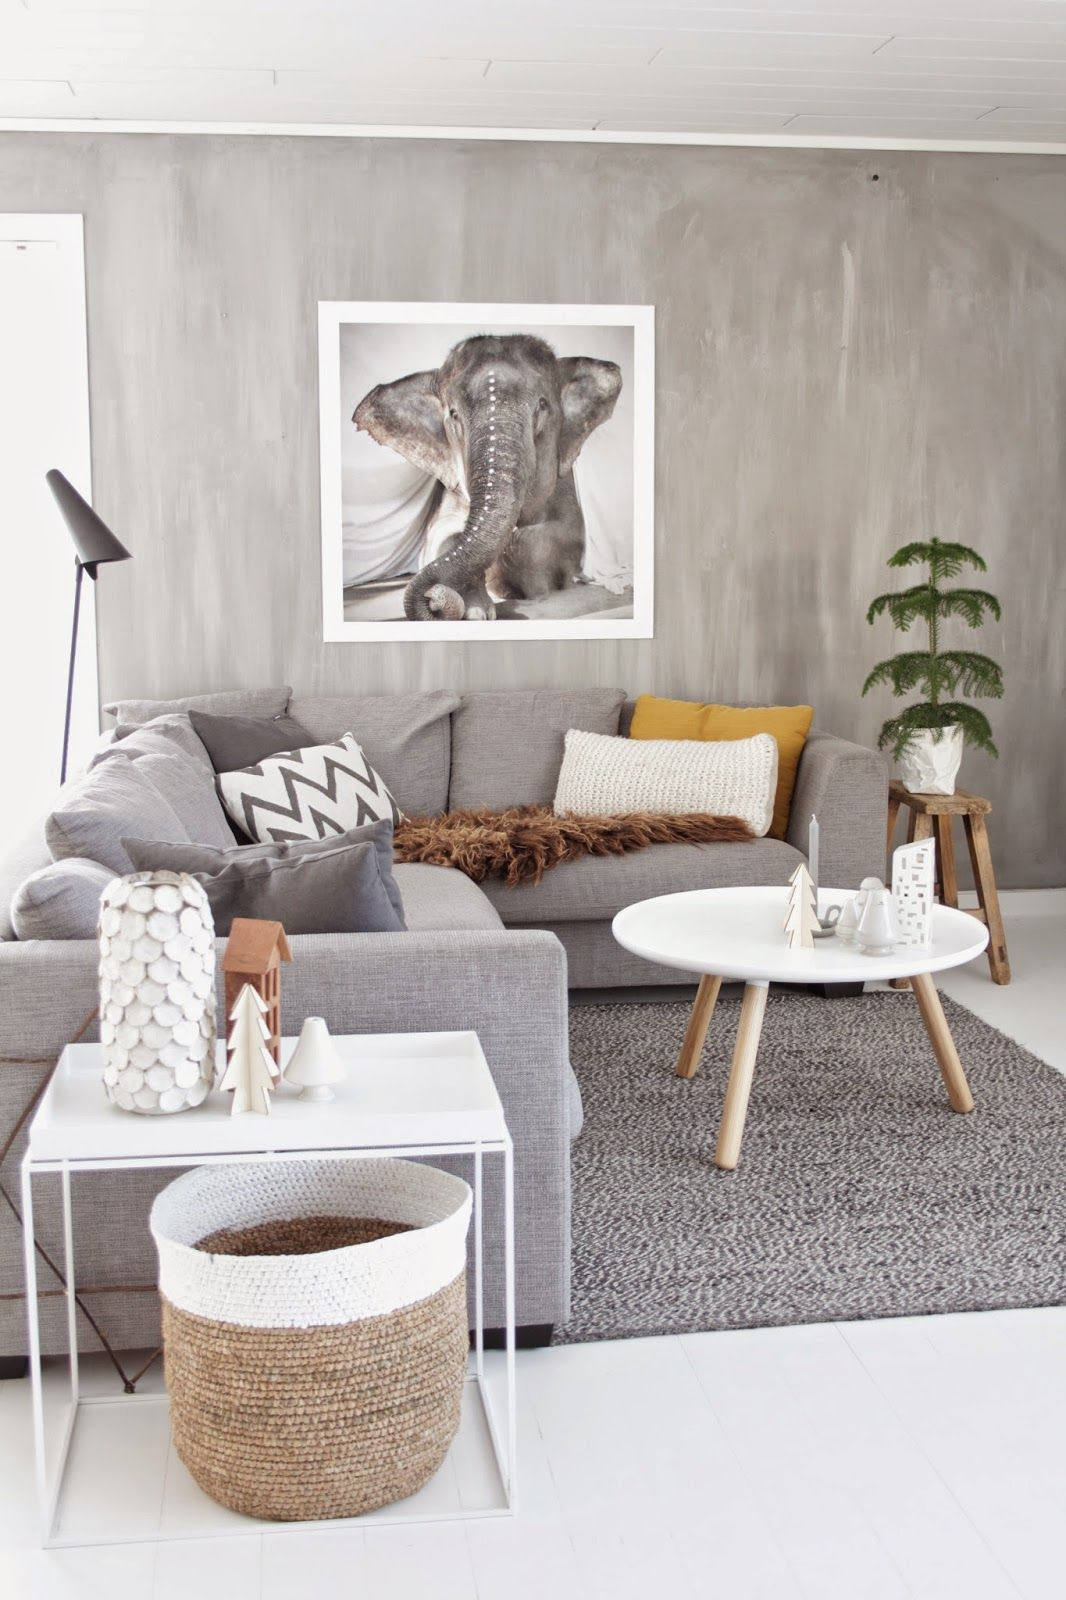 7 amazingly inspirational living rooms | Diy concrete, Concrete and ...